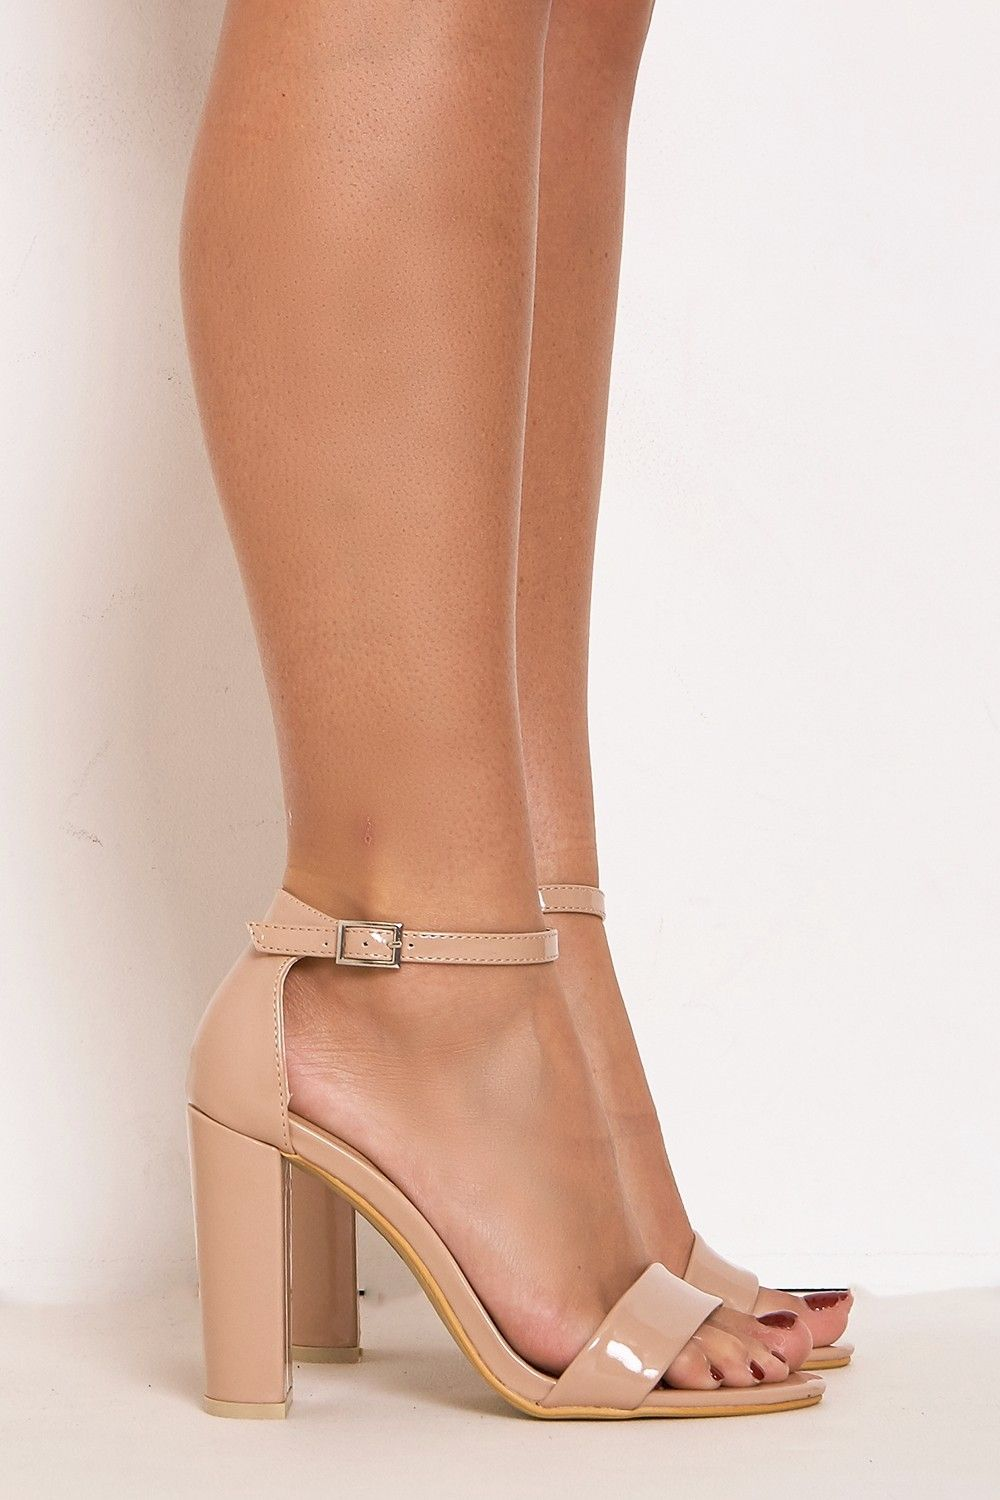 Nude Patent Barely There Block Heels | LASULA | Steven look here x ...